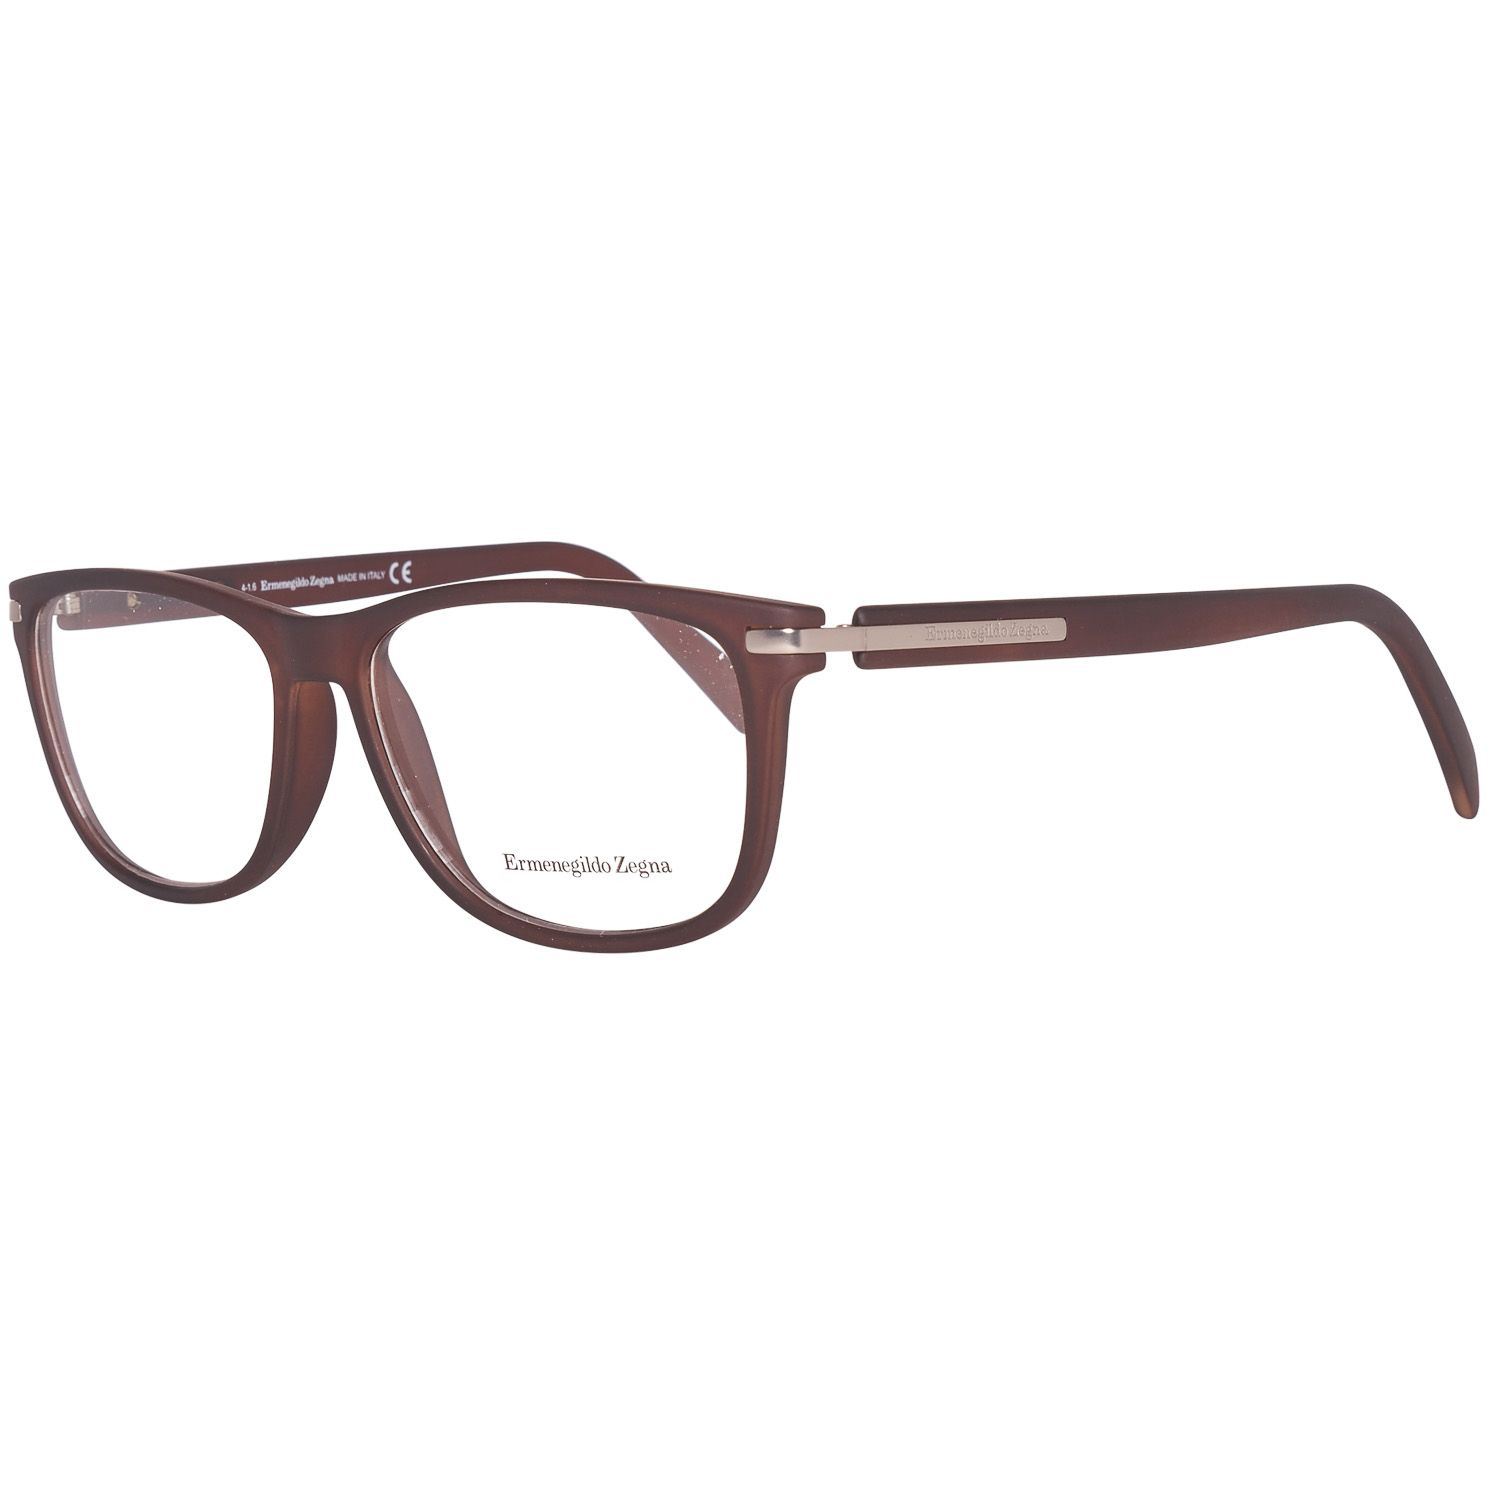 Ermenegildo Zegna Optical Frame EZ5005 049 55 Men Brown